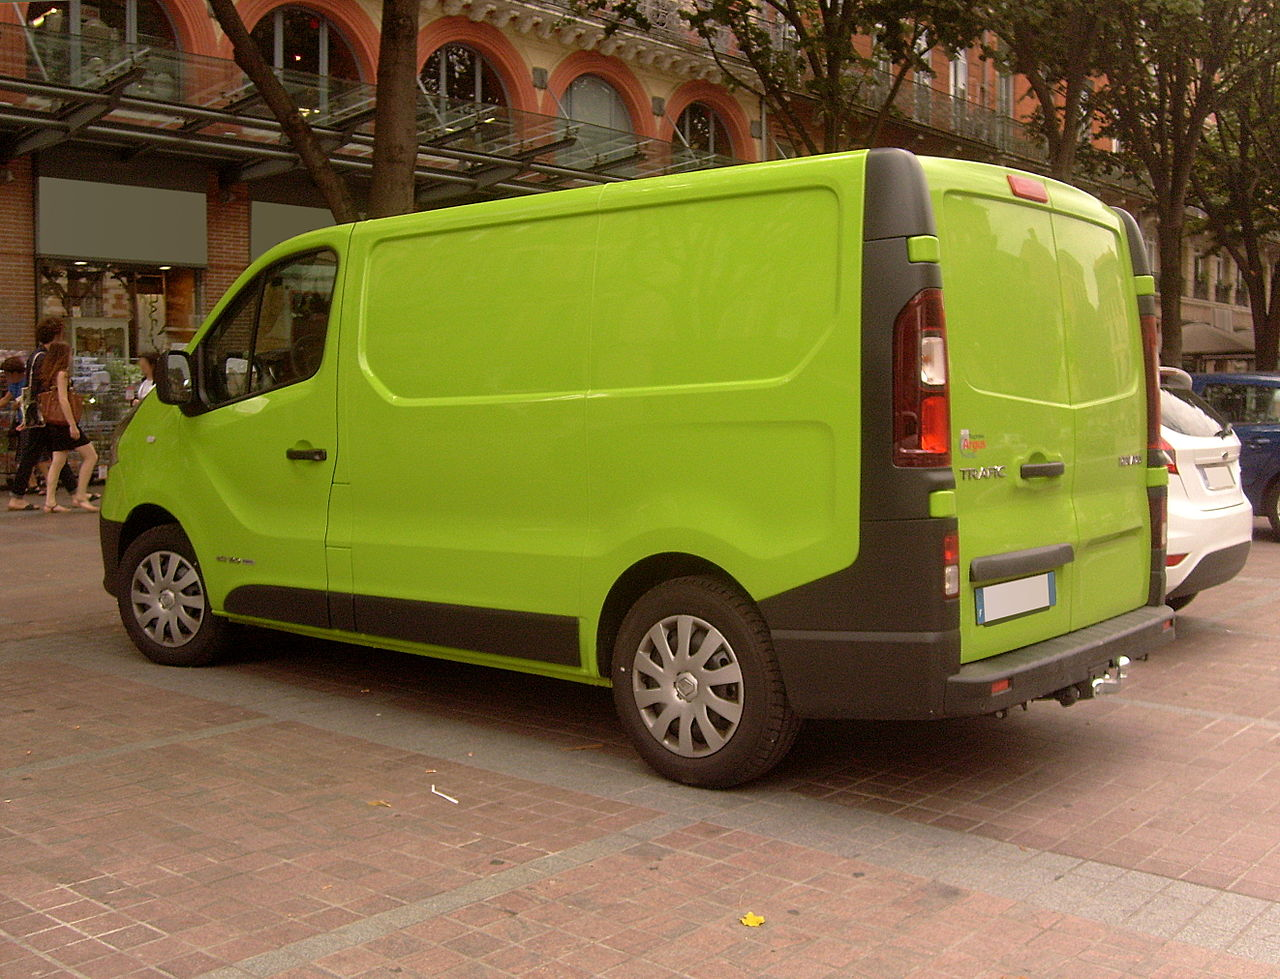 file green 2015 renault trafic dci 120 wikimedia commons. Black Bedroom Furniture Sets. Home Design Ideas